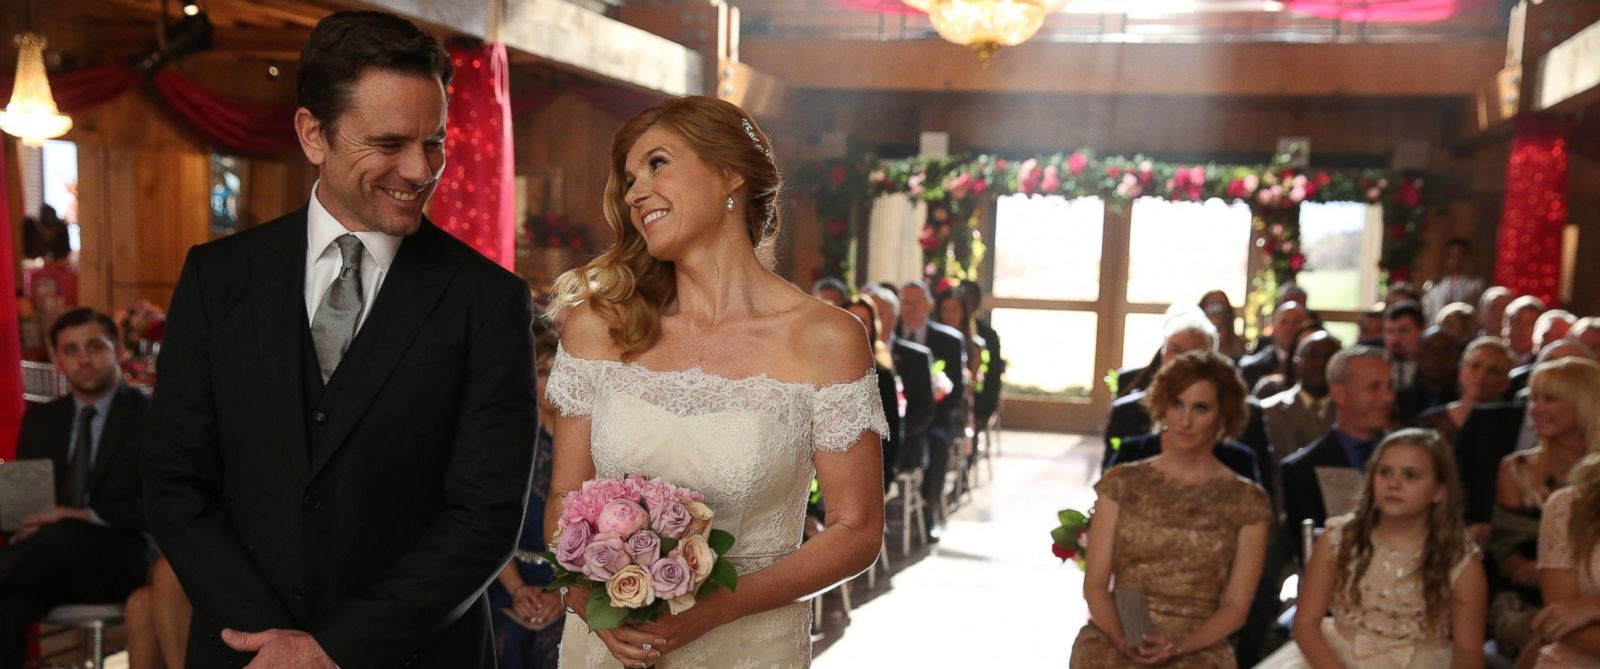 nashville recap the big wedding youve been waiting for